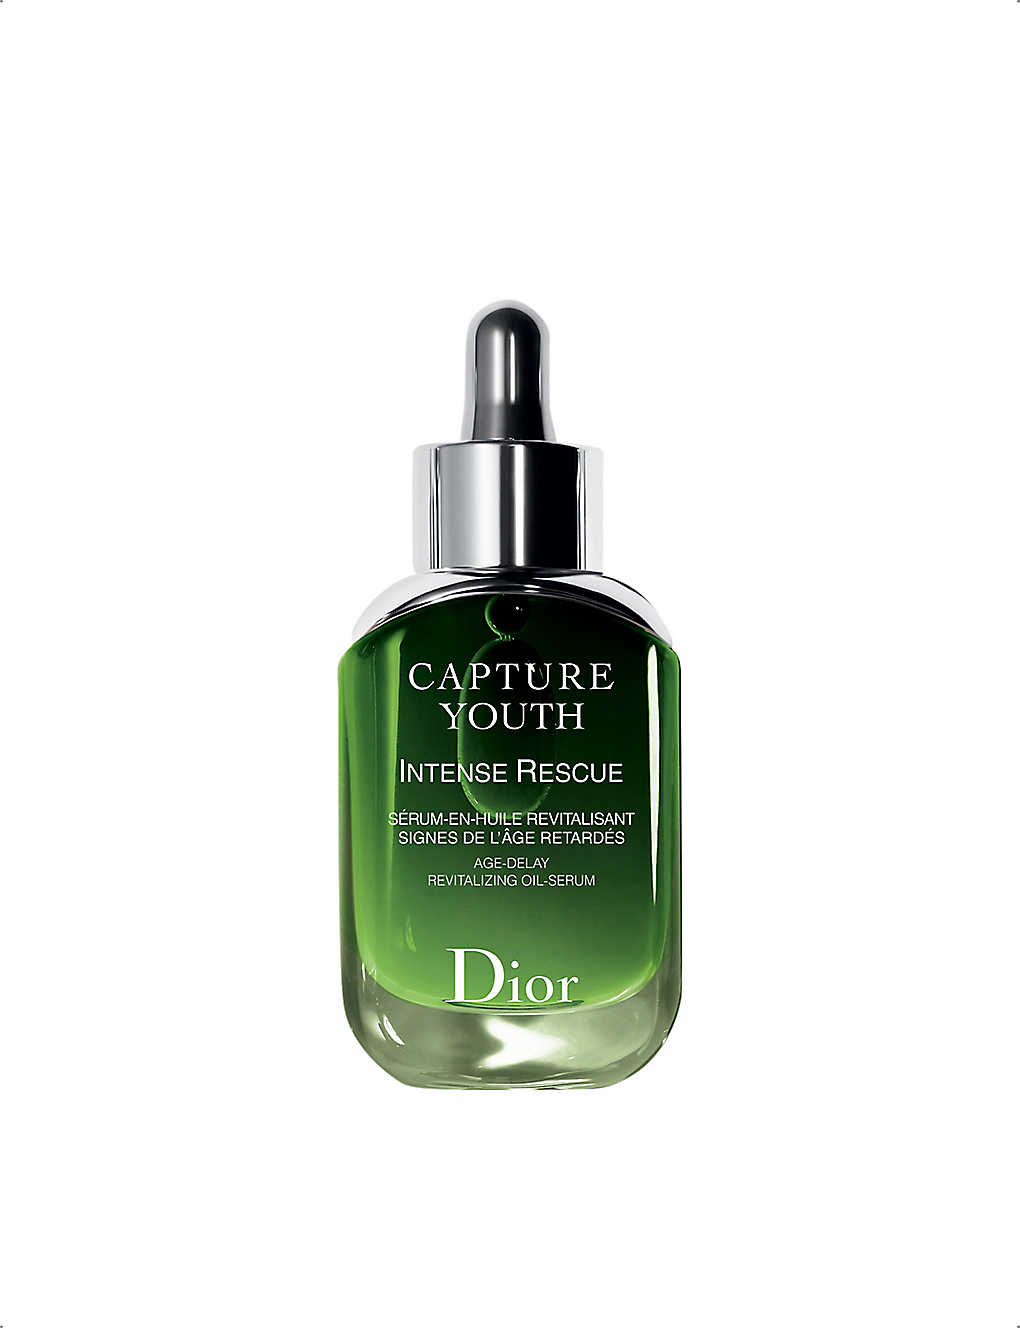 DIOR: Capture Youth Intense Rescue Age-Delay Revitalizing Oil-Serum 30ml